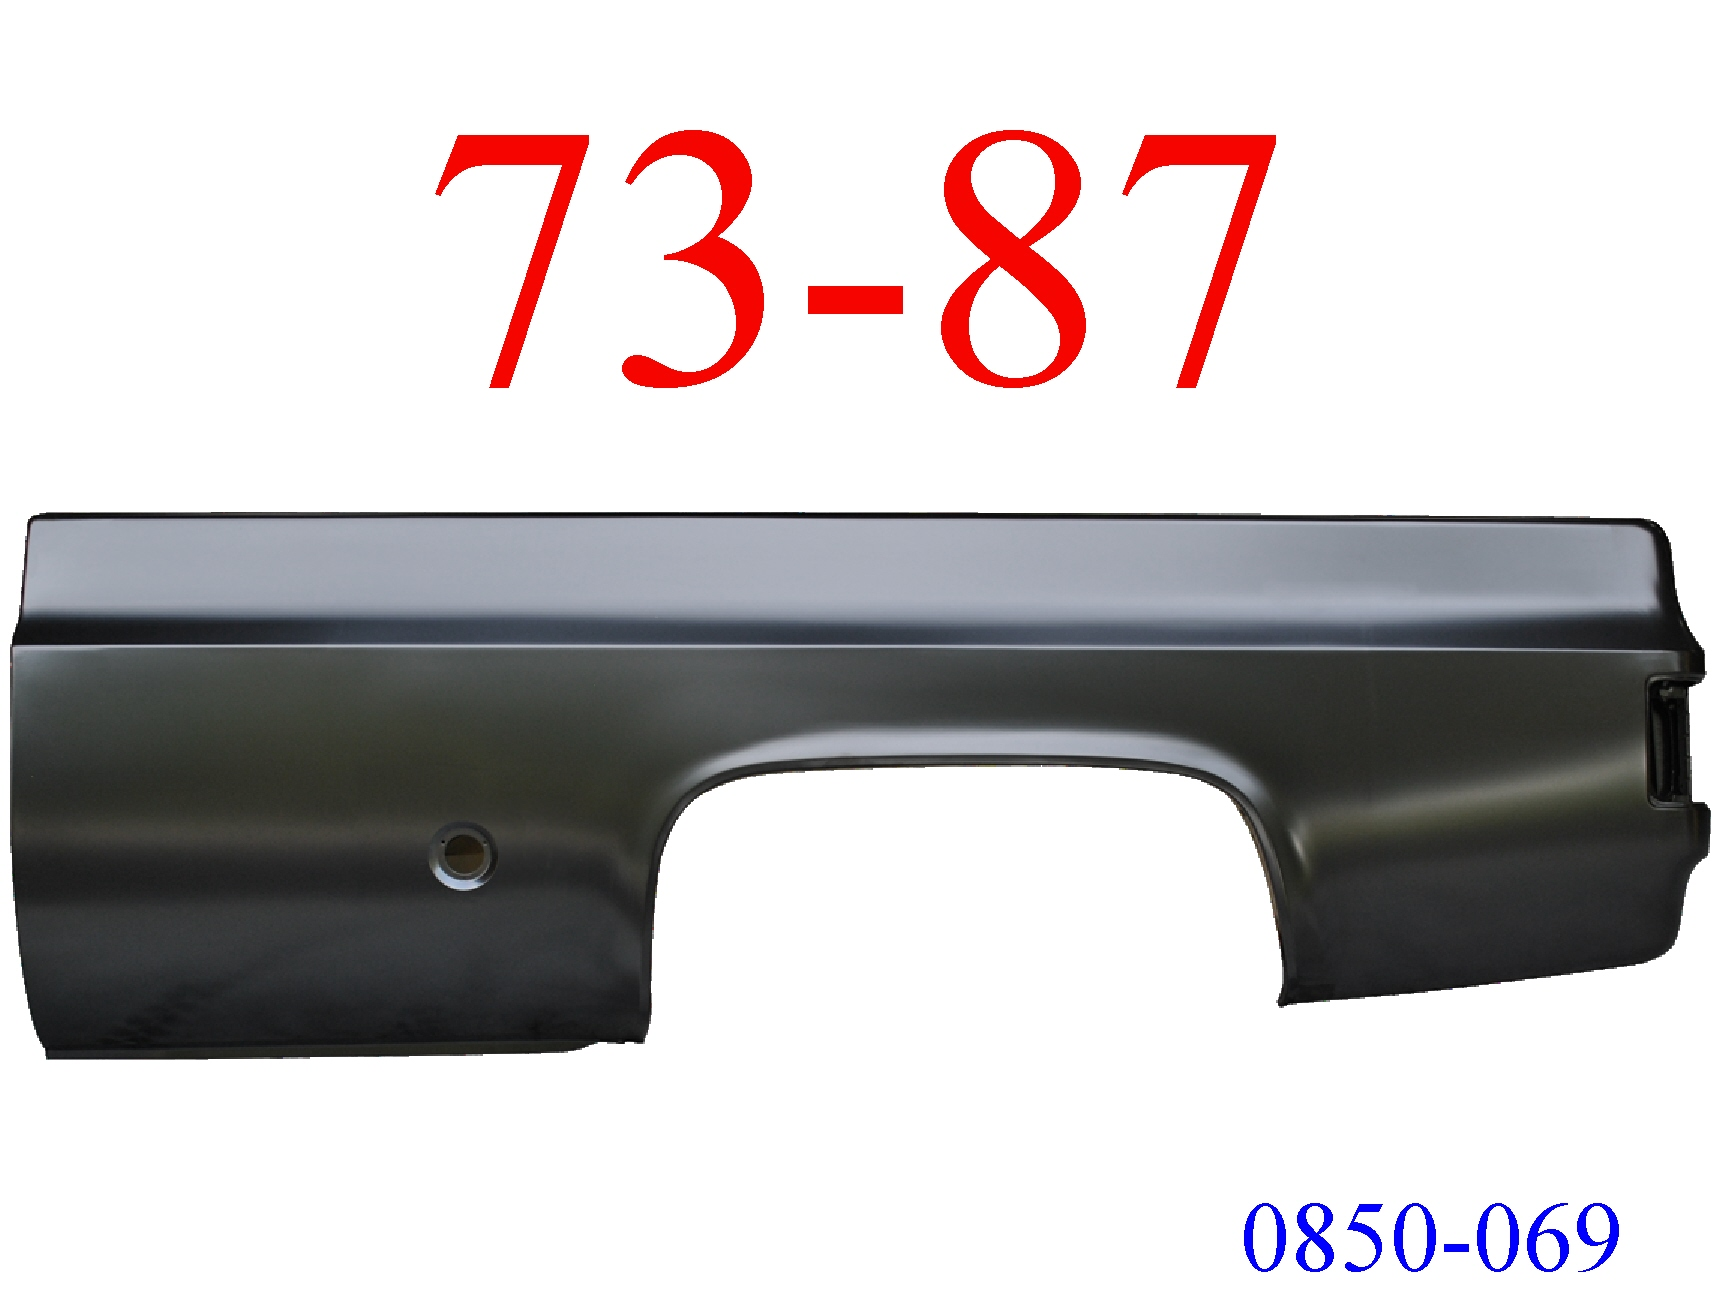 73-87 Chevy Truck 8' Left Bed Side Round Fuel Hole 0850-069